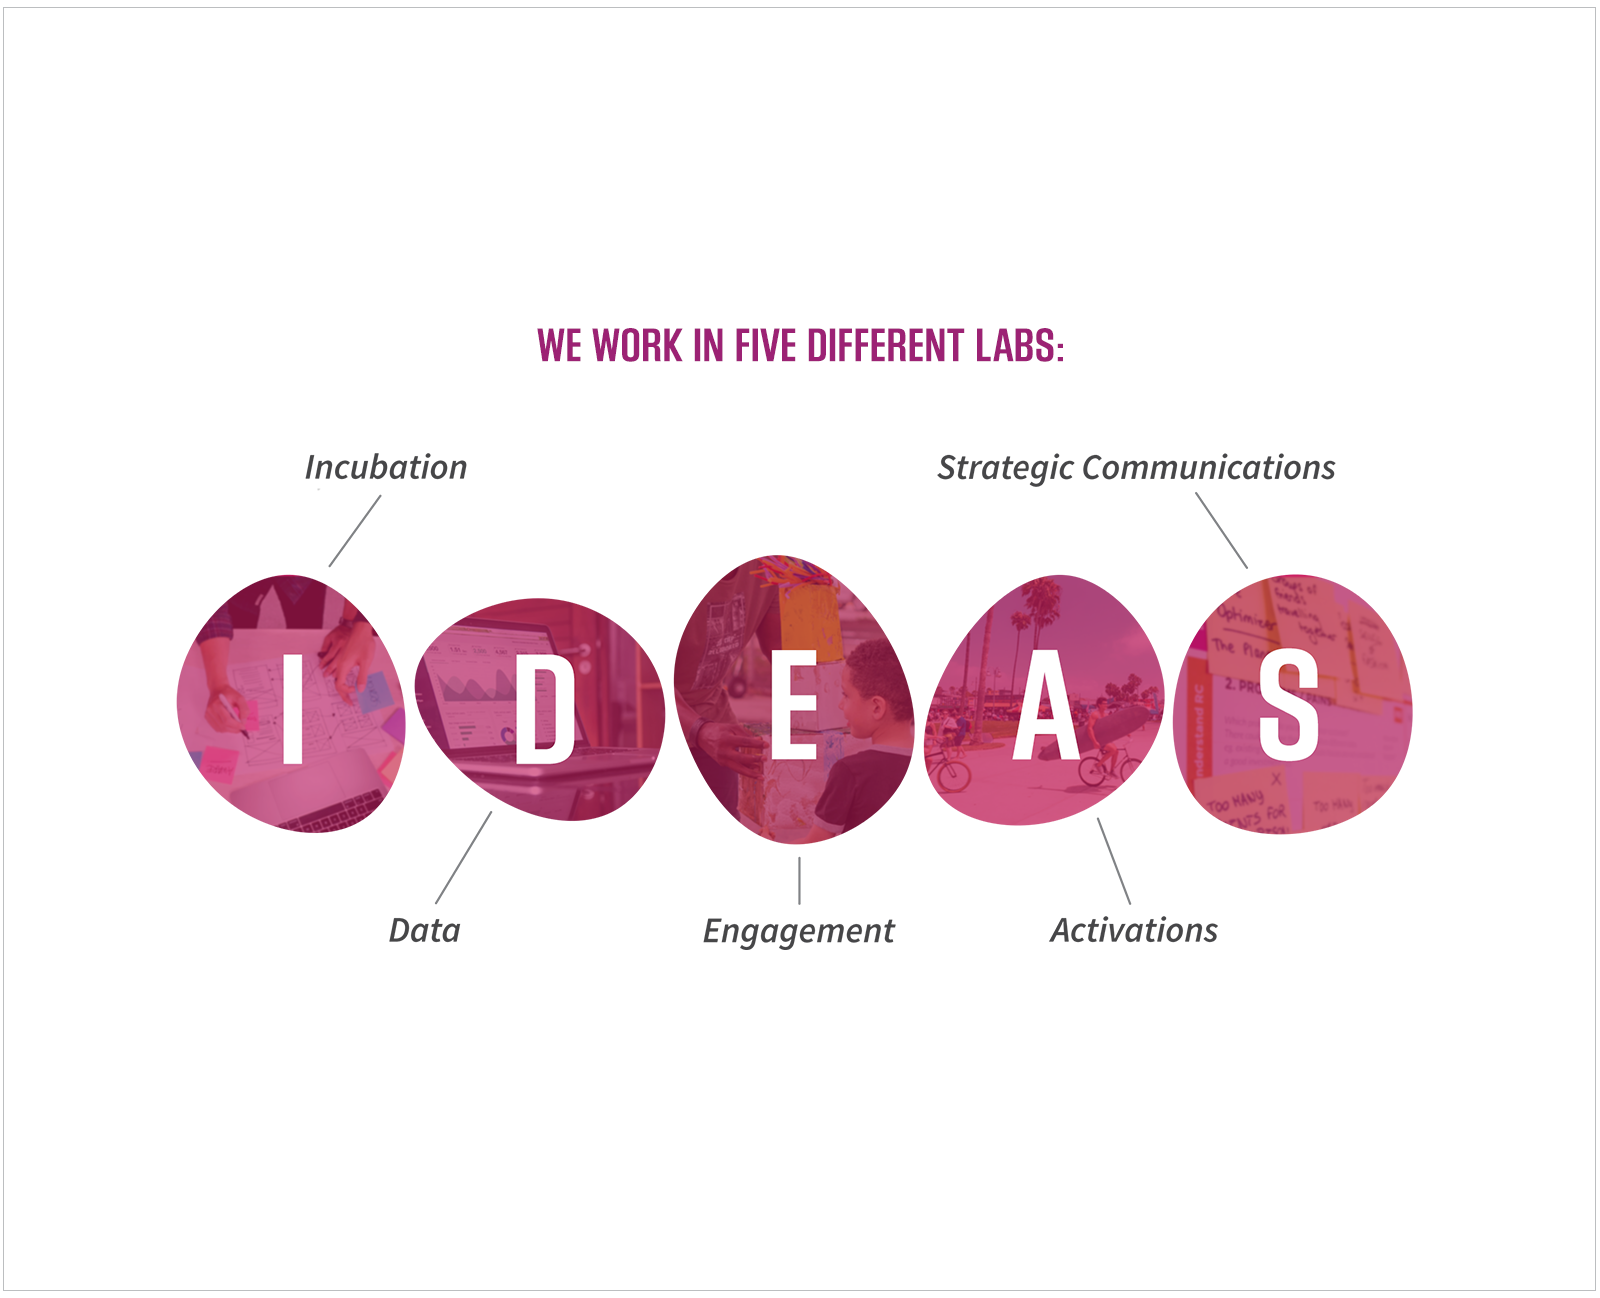 Infographic illustrating the organization's 5 areas of work